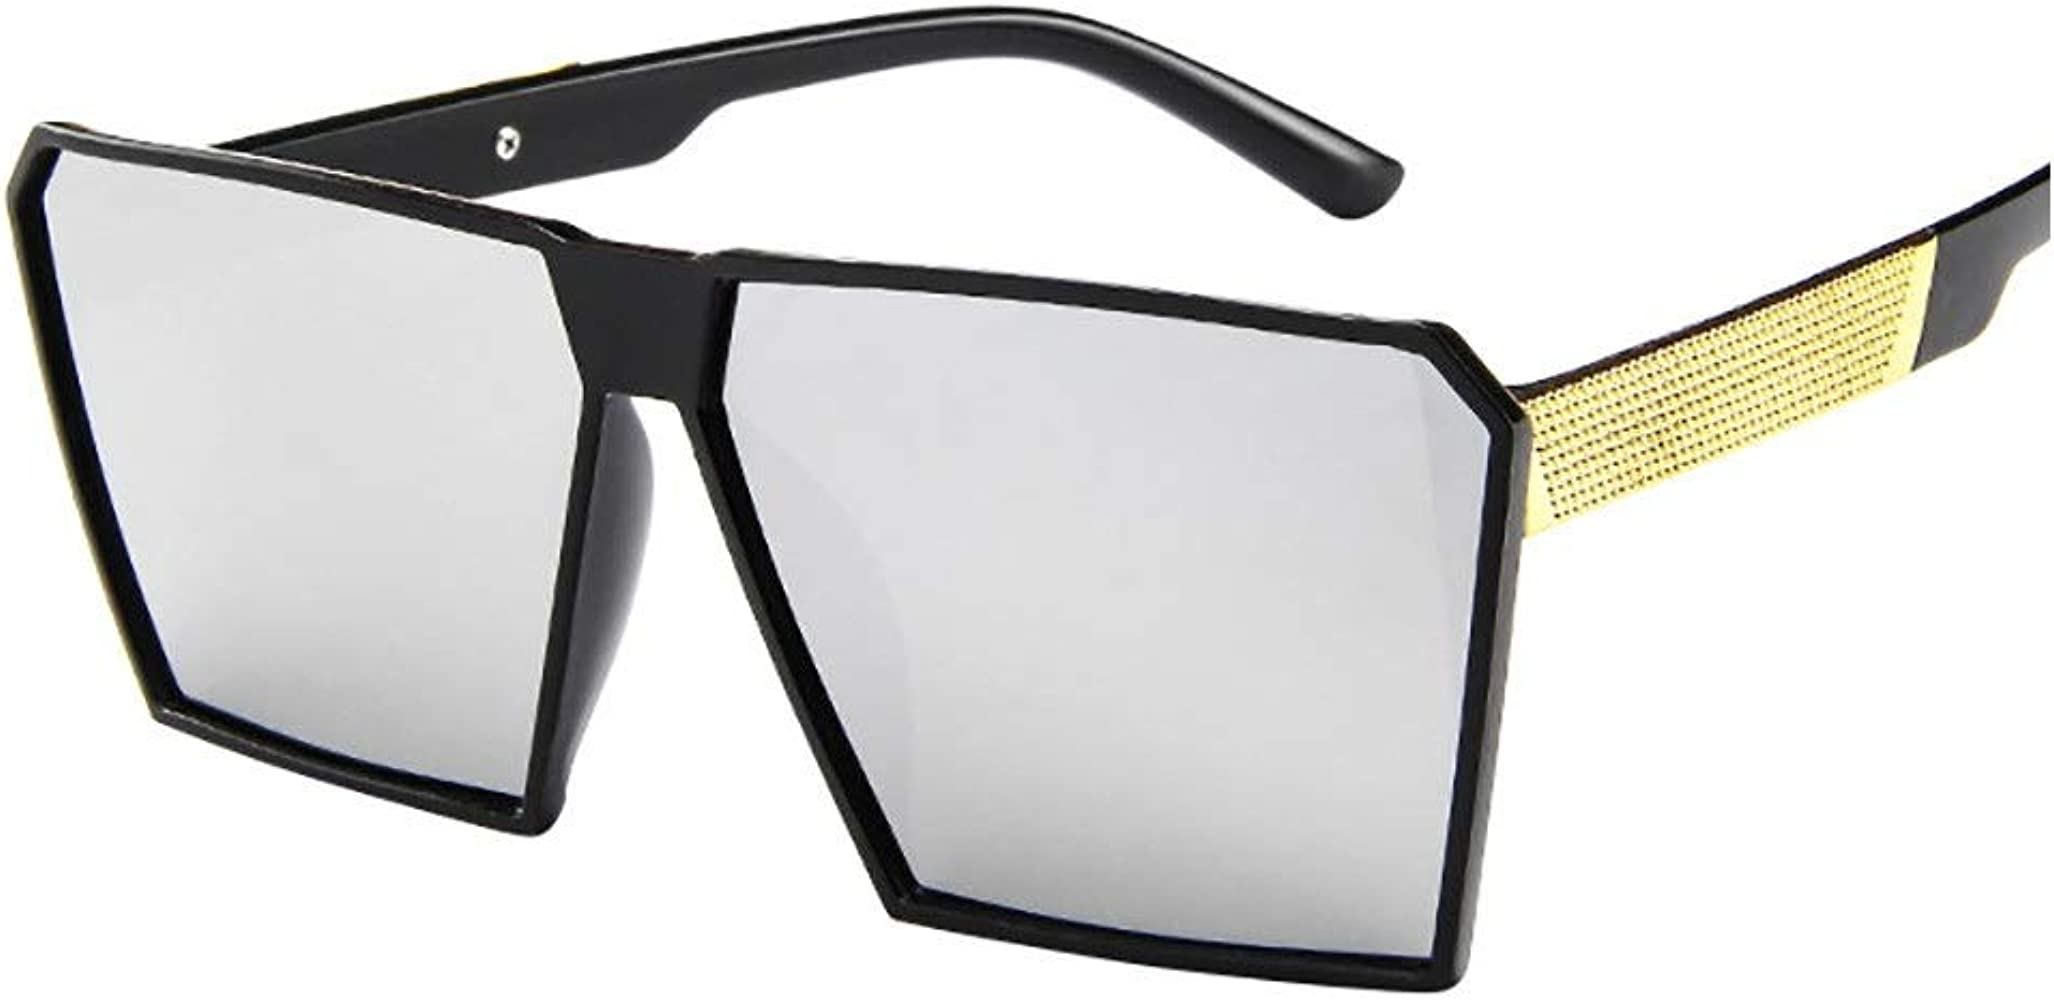 Vintage Mens Oversized Square Frame Gradient Sunglasses Outdoor Eyewear Shades